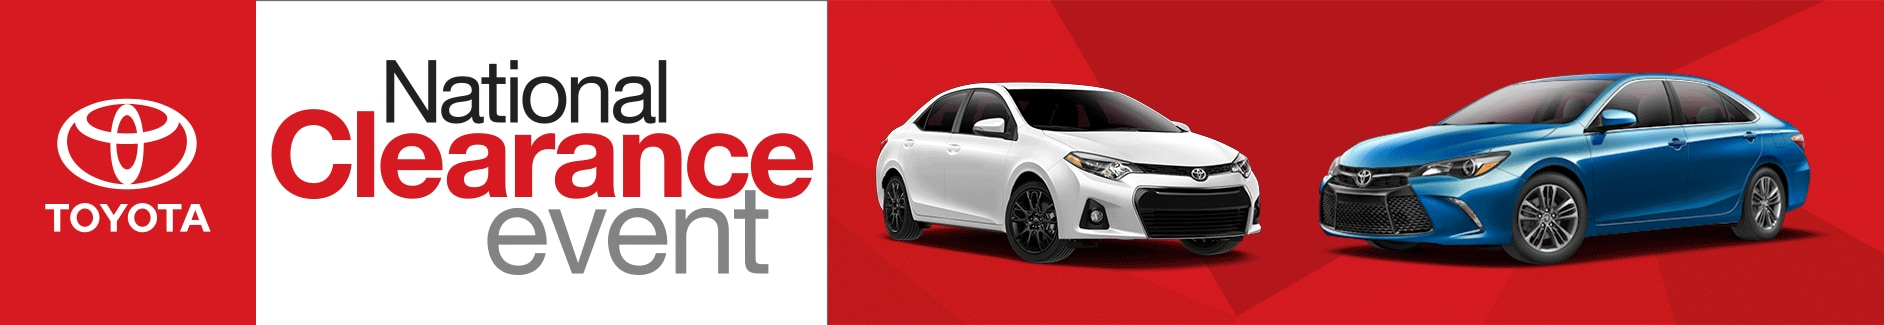 Toyota of Nashua National Clearance Event